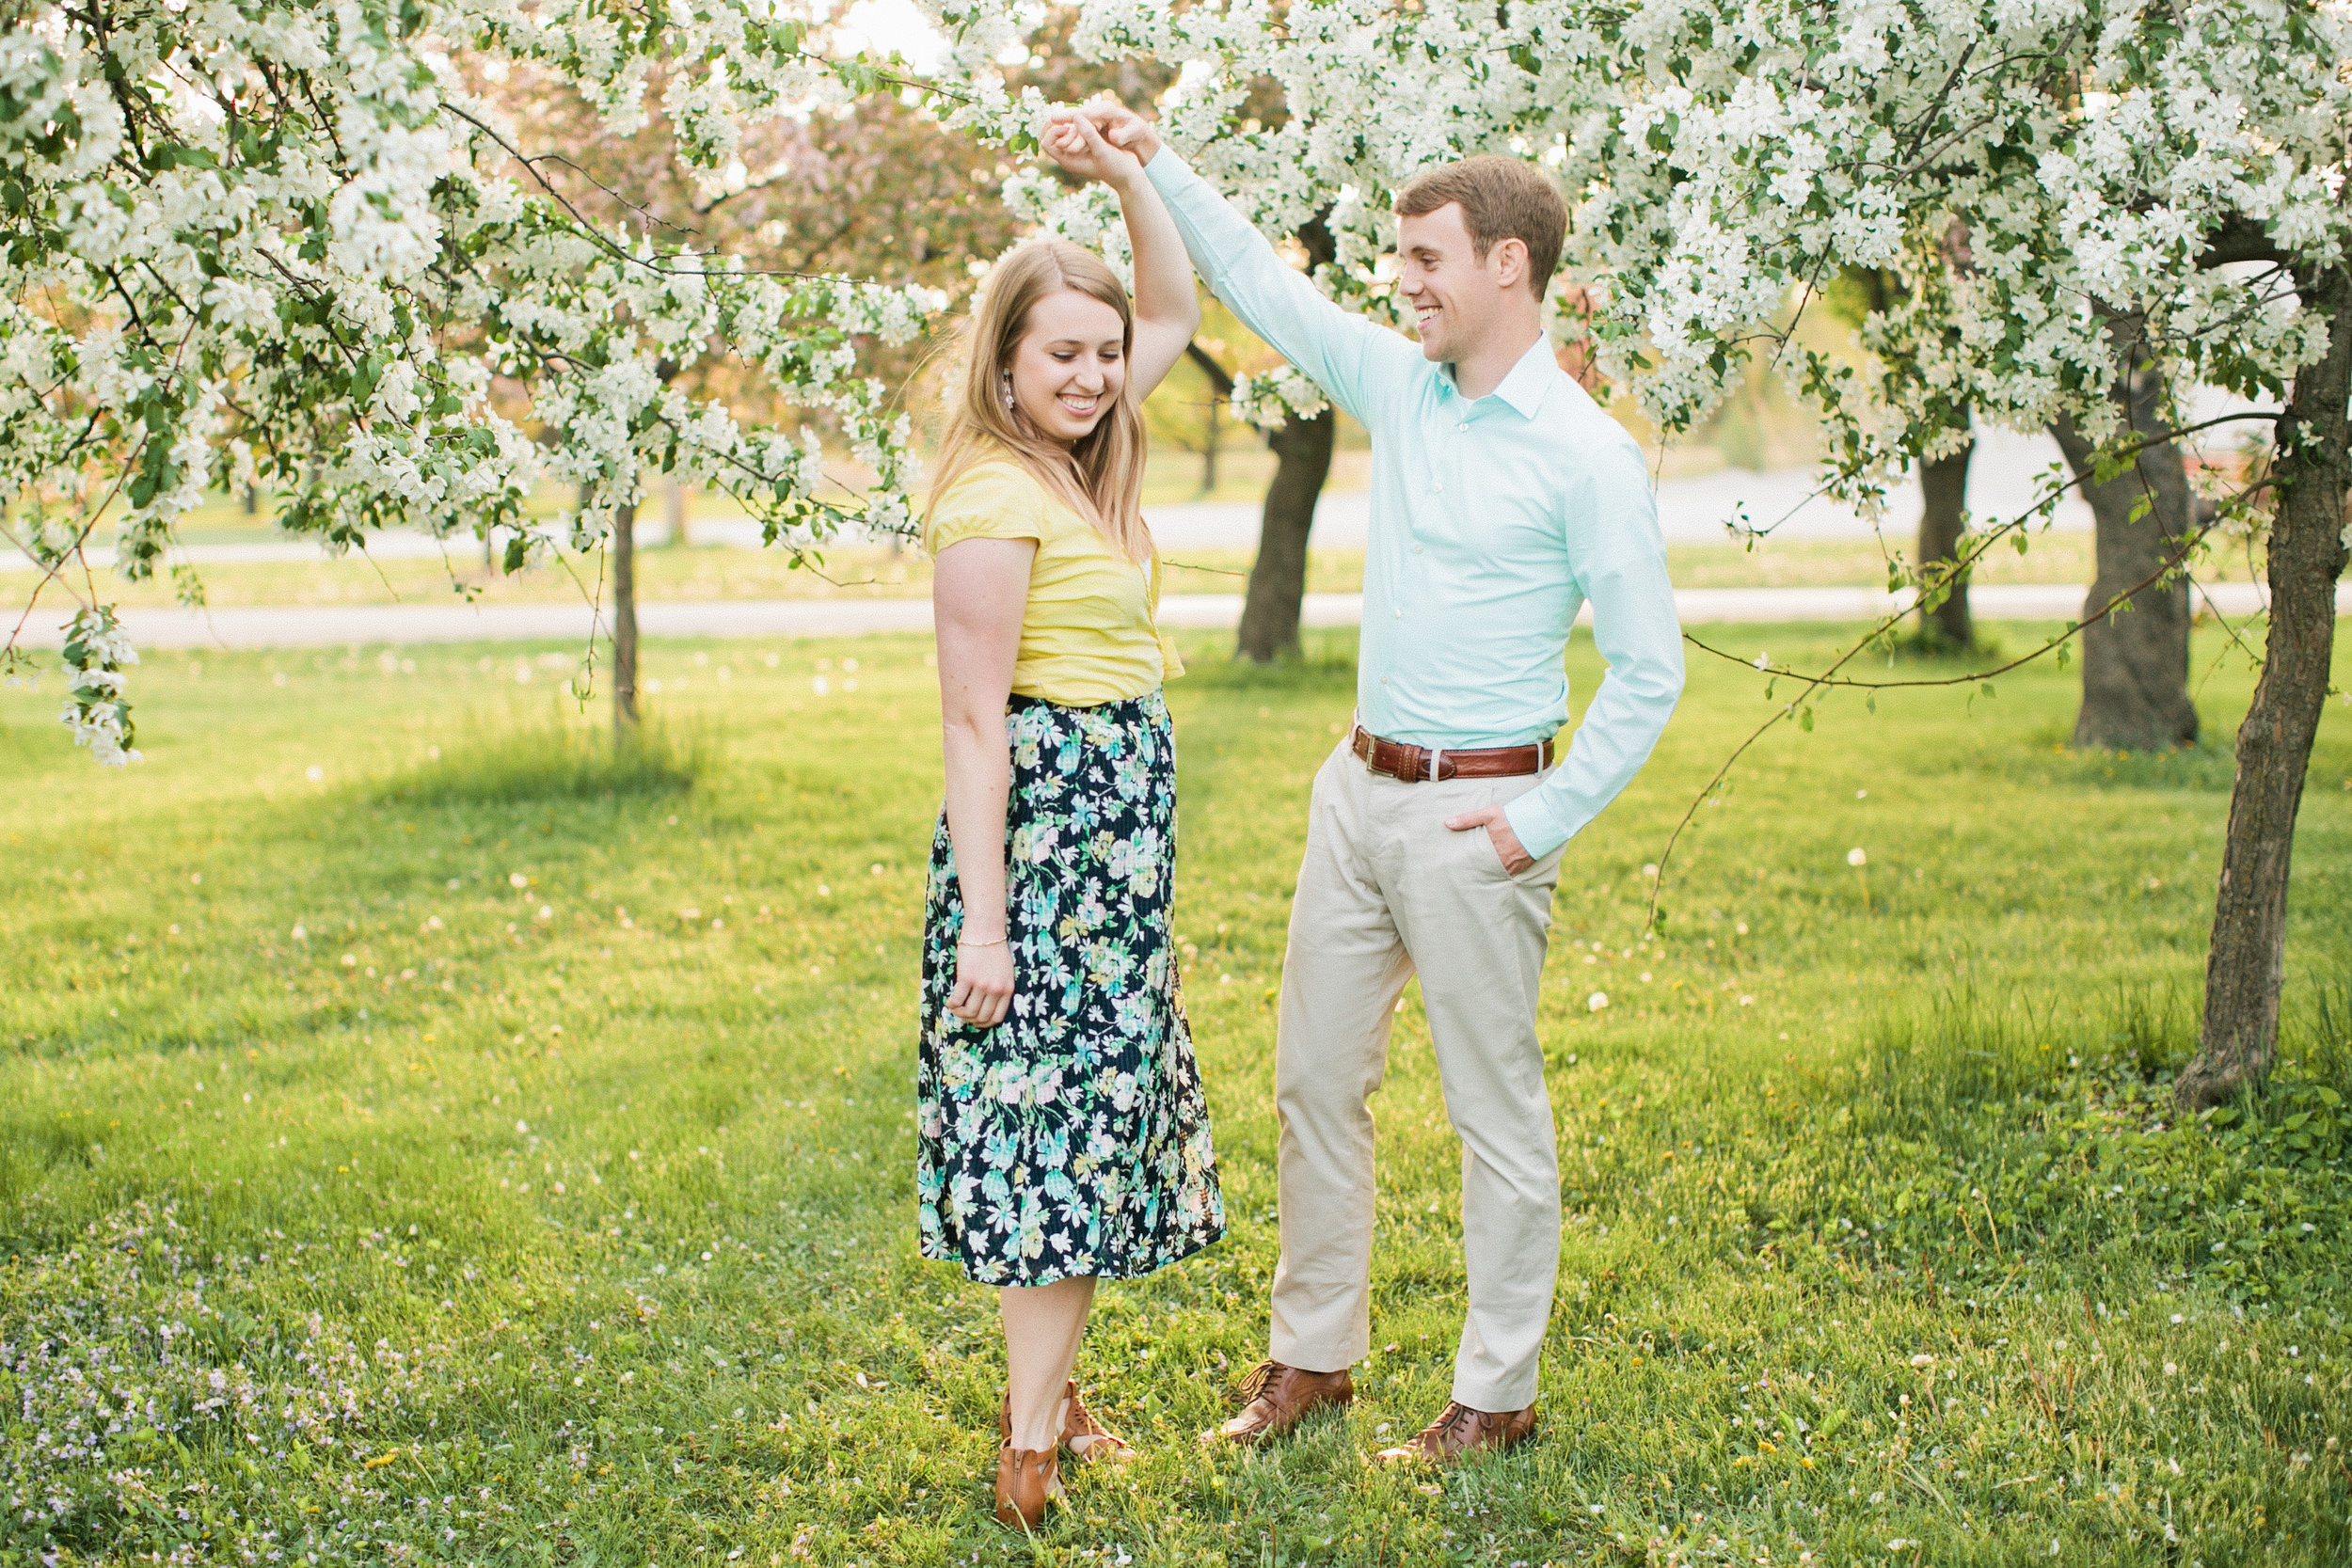 couple dancing in flower trees des moines iowa engaged